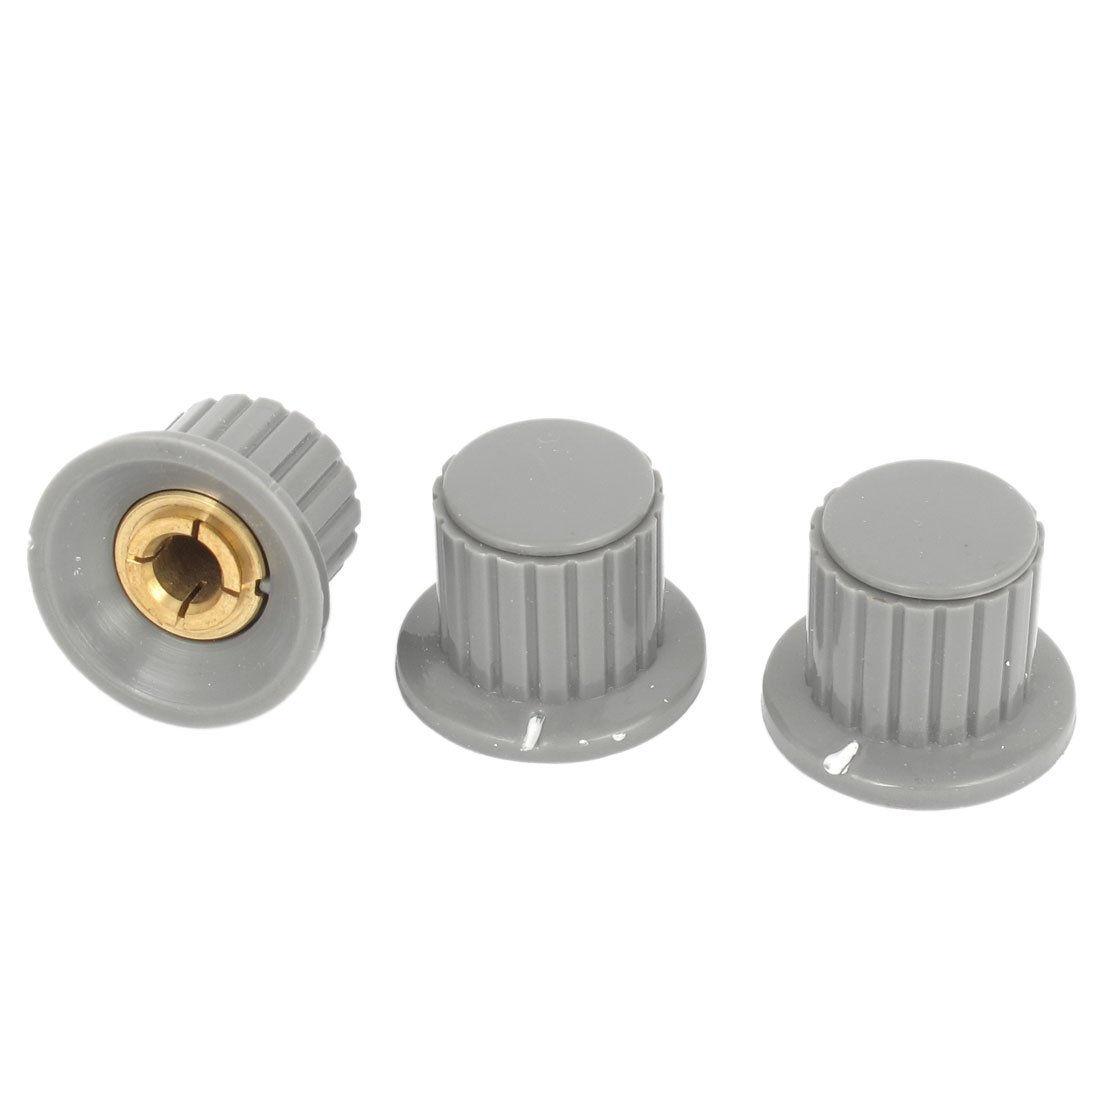 "Gray 19mm Top Dia 1/4"" Shaft Potentiometer Volume Control Knobs 3 Pcs"